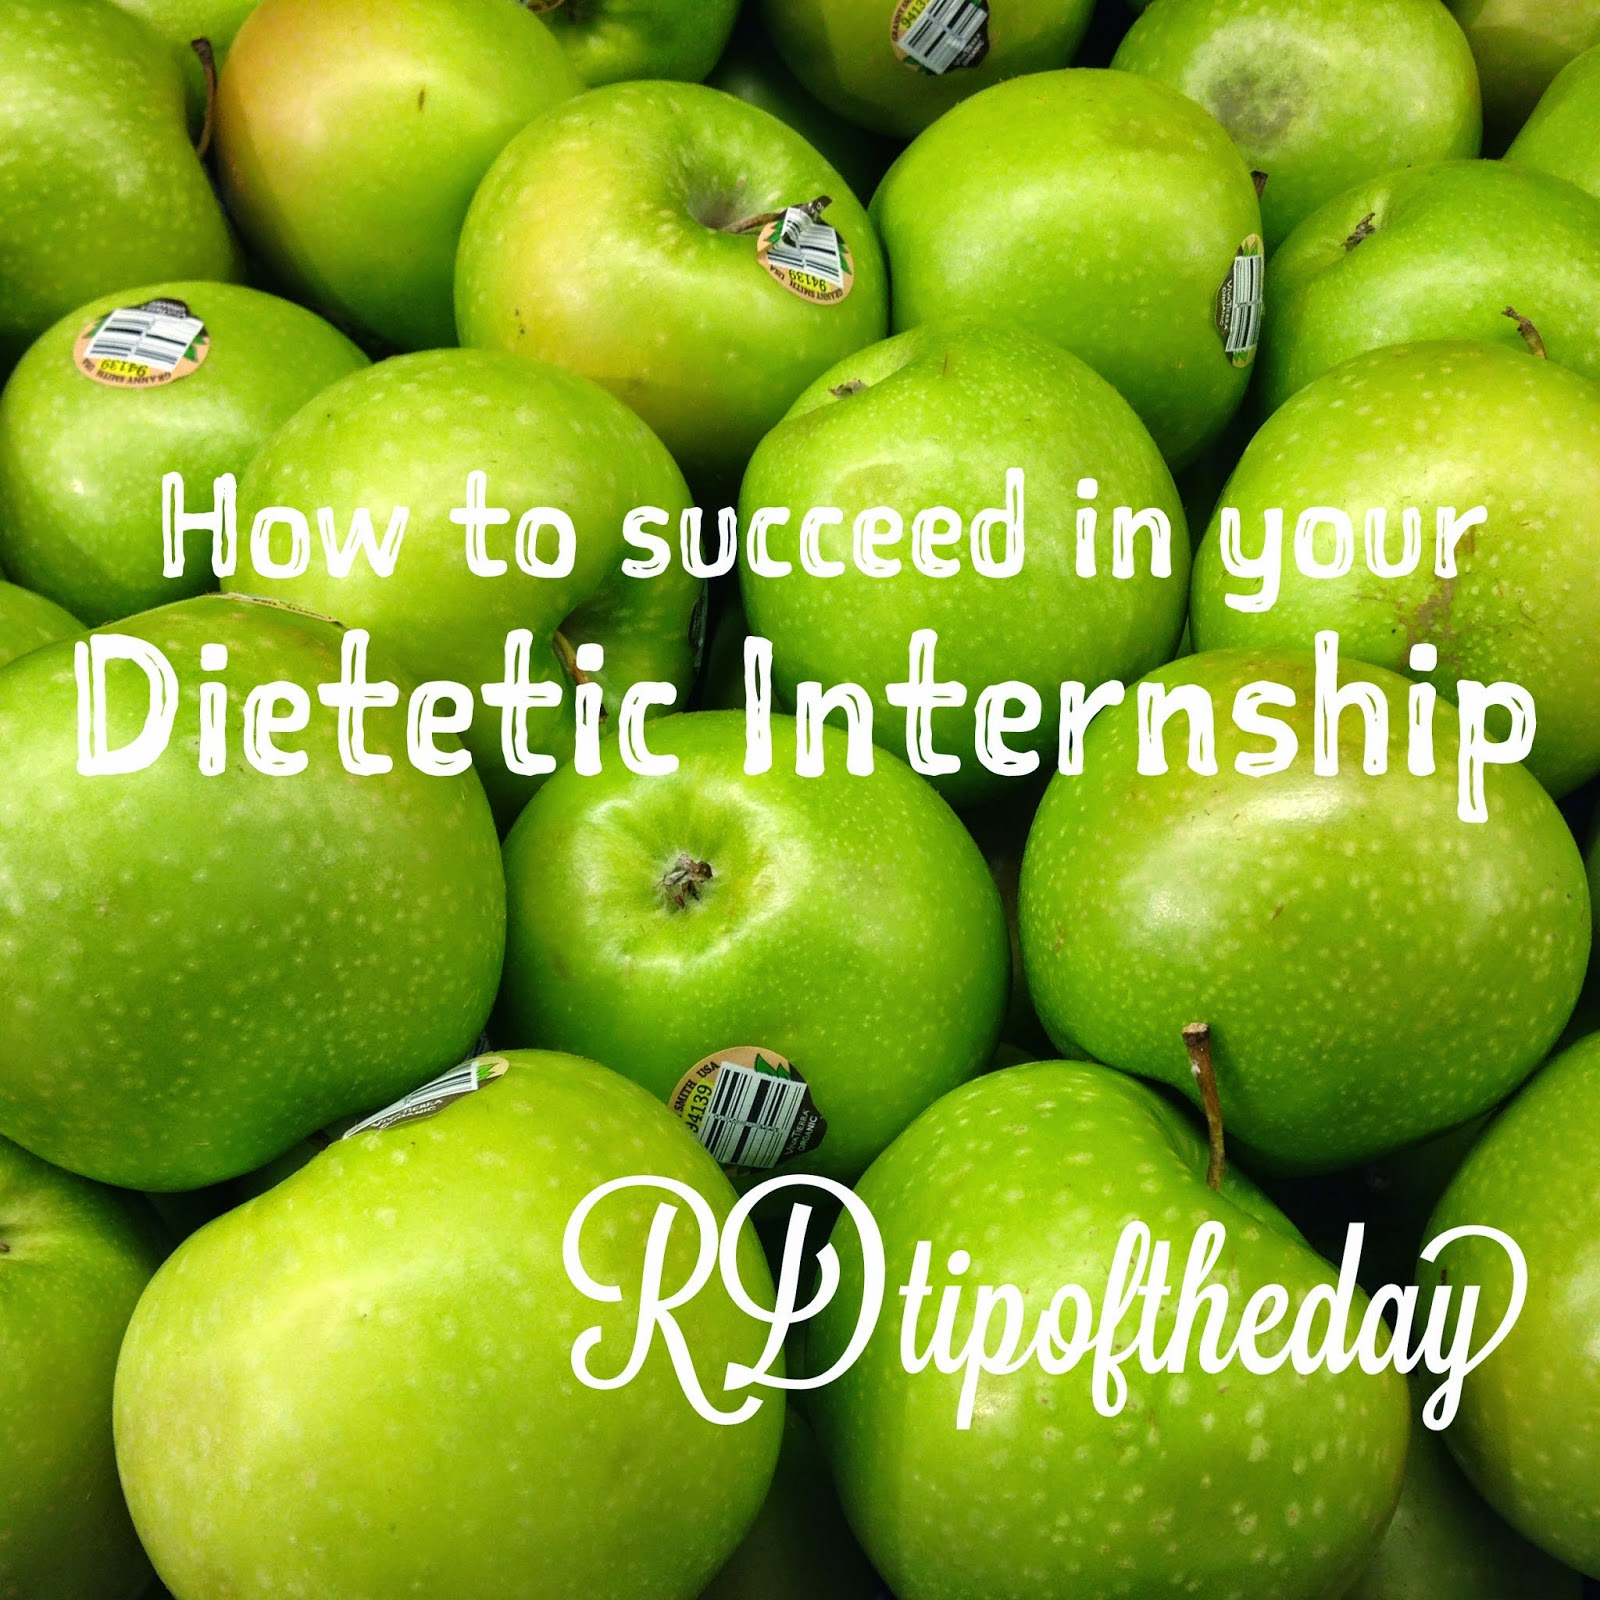 RD Tip of the Day : Becoming a Registered Dietitian: How to